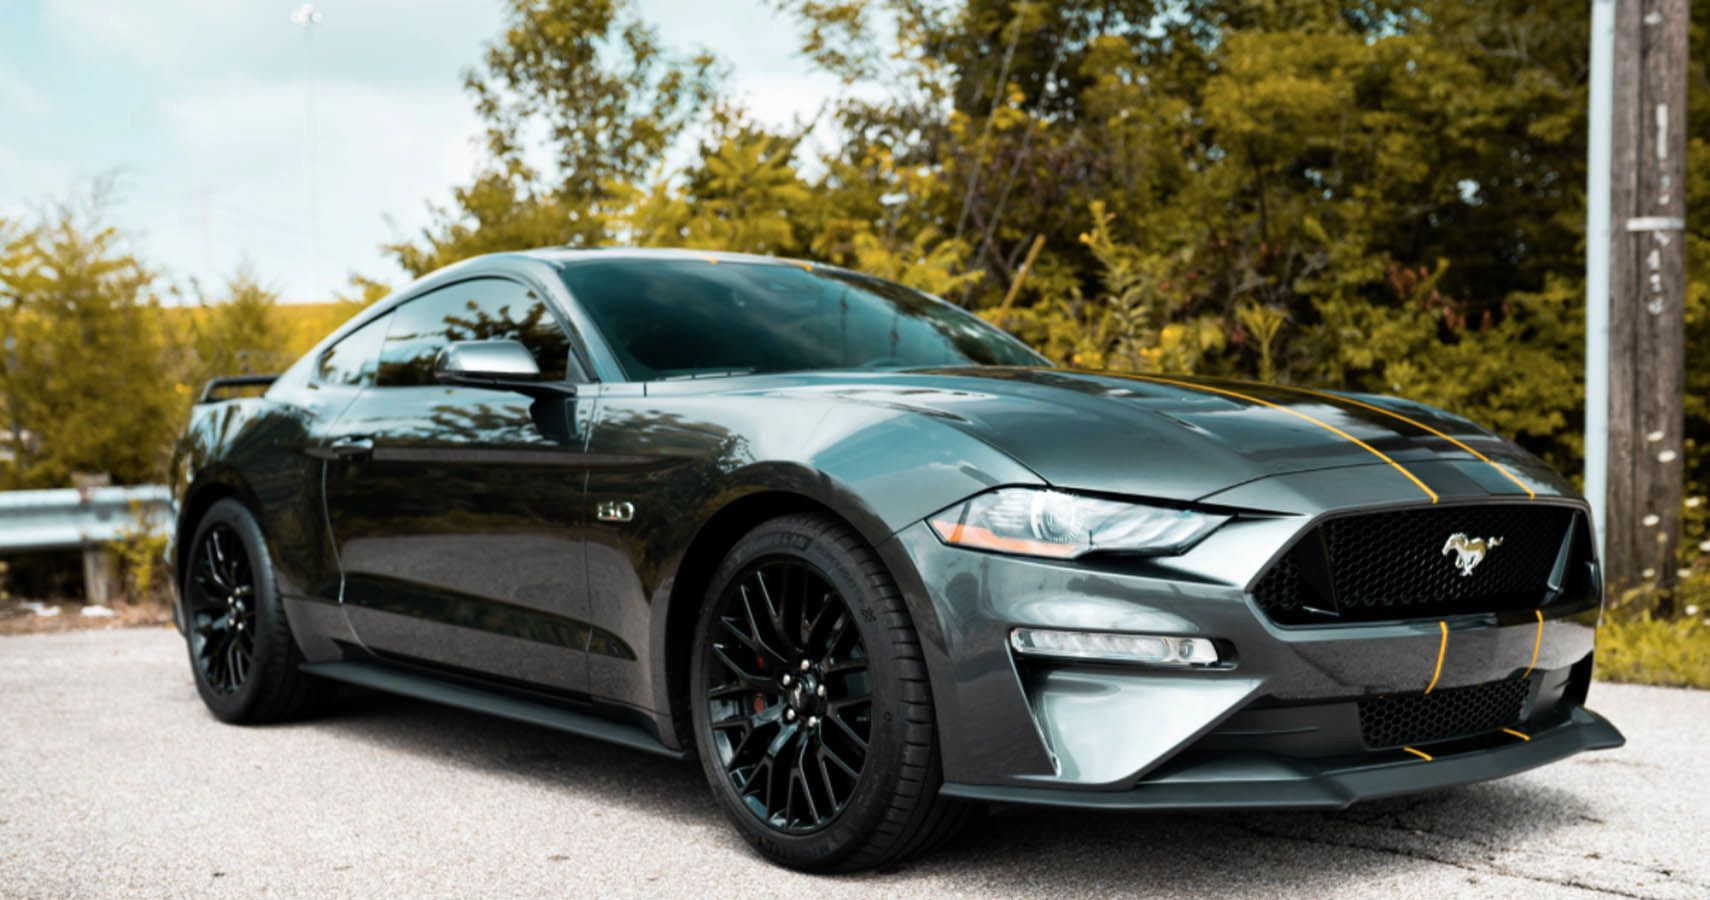 The Mustang Shelby GT500 may be the most powerful production Ford of all time with its 770 hp (574 kW) and 847 Nm (625 lb-ft) of torque, but it comes with a price tag to match the specs. What if you want more for less?